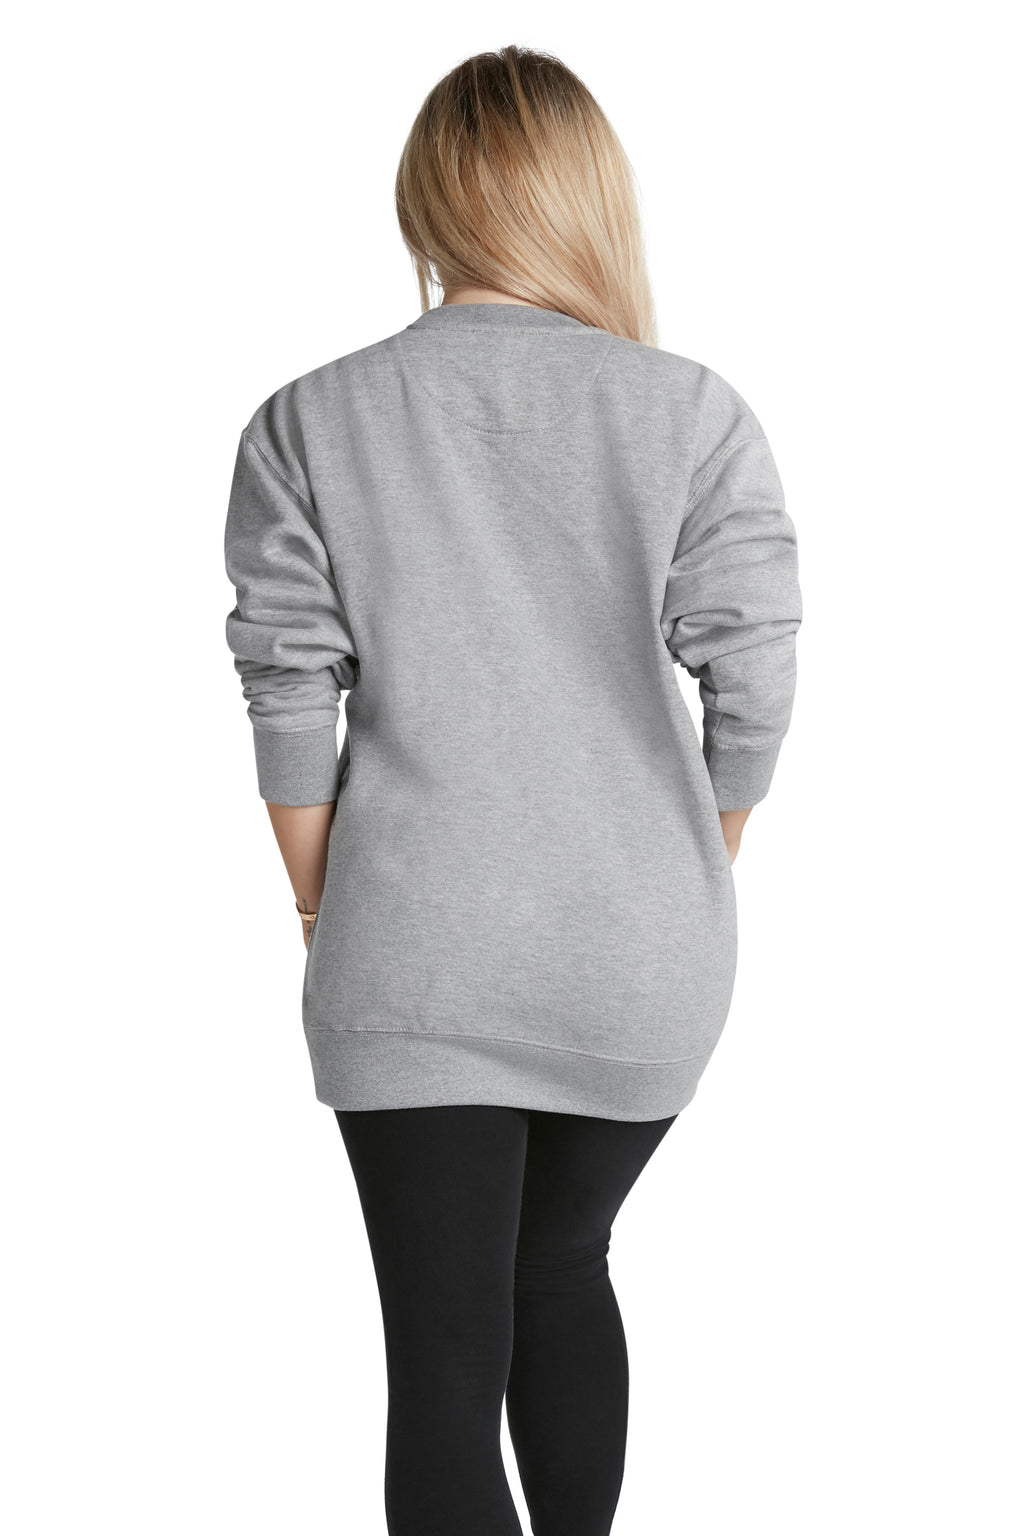 Women's Crewneck - Favorite Child